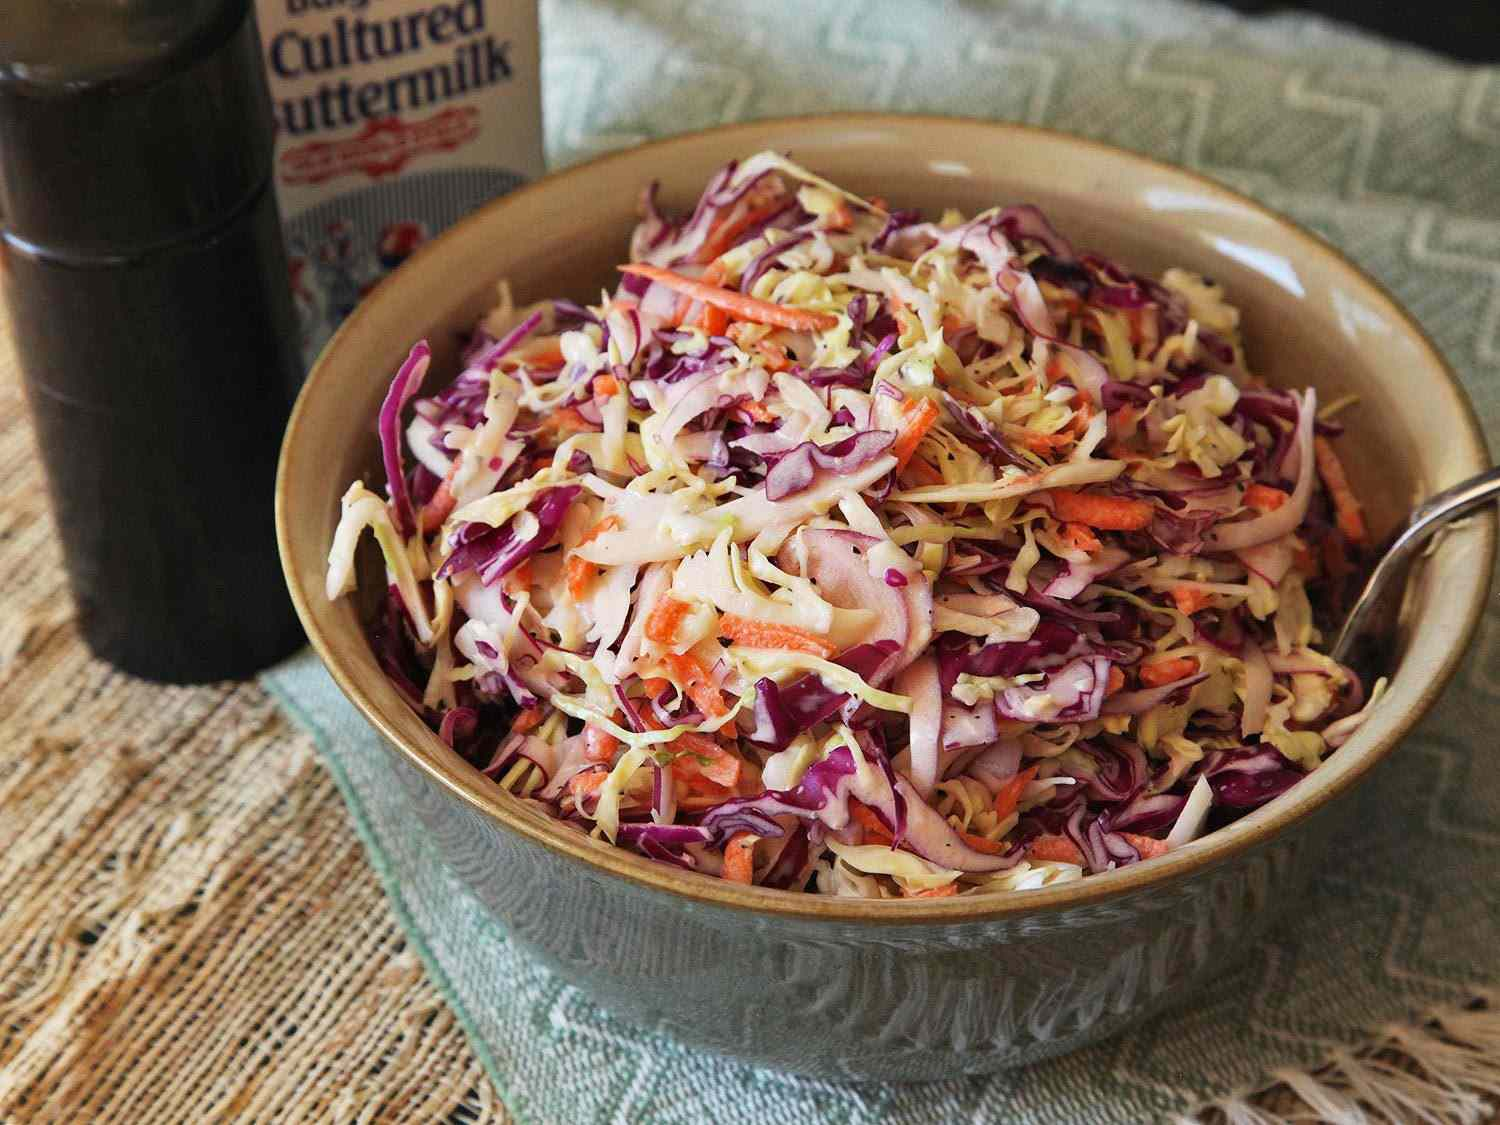 A bowl of Super-Simple Tangy Buttermilk Coleslaw, made with red and green cabbage and carrots